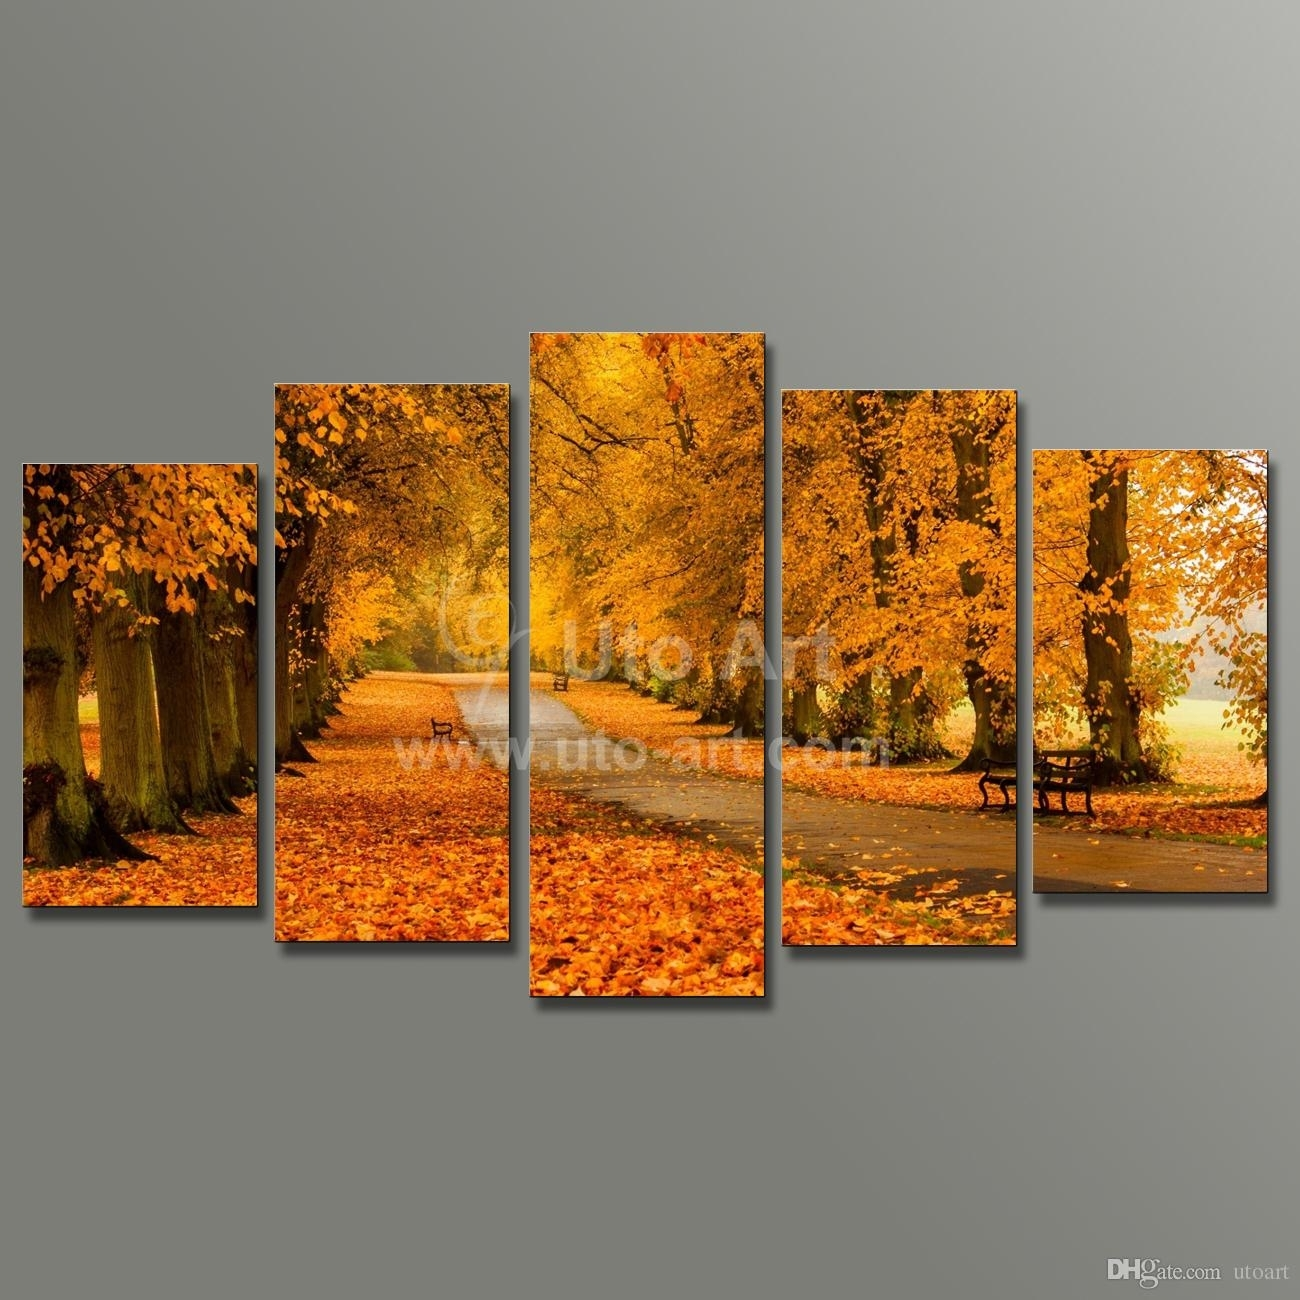 Best Modern Modular Paintings On Canvas 5 Panel Wall Art Painting Of With Regard To Recent Wall Art Canvas (View 9 of 15)